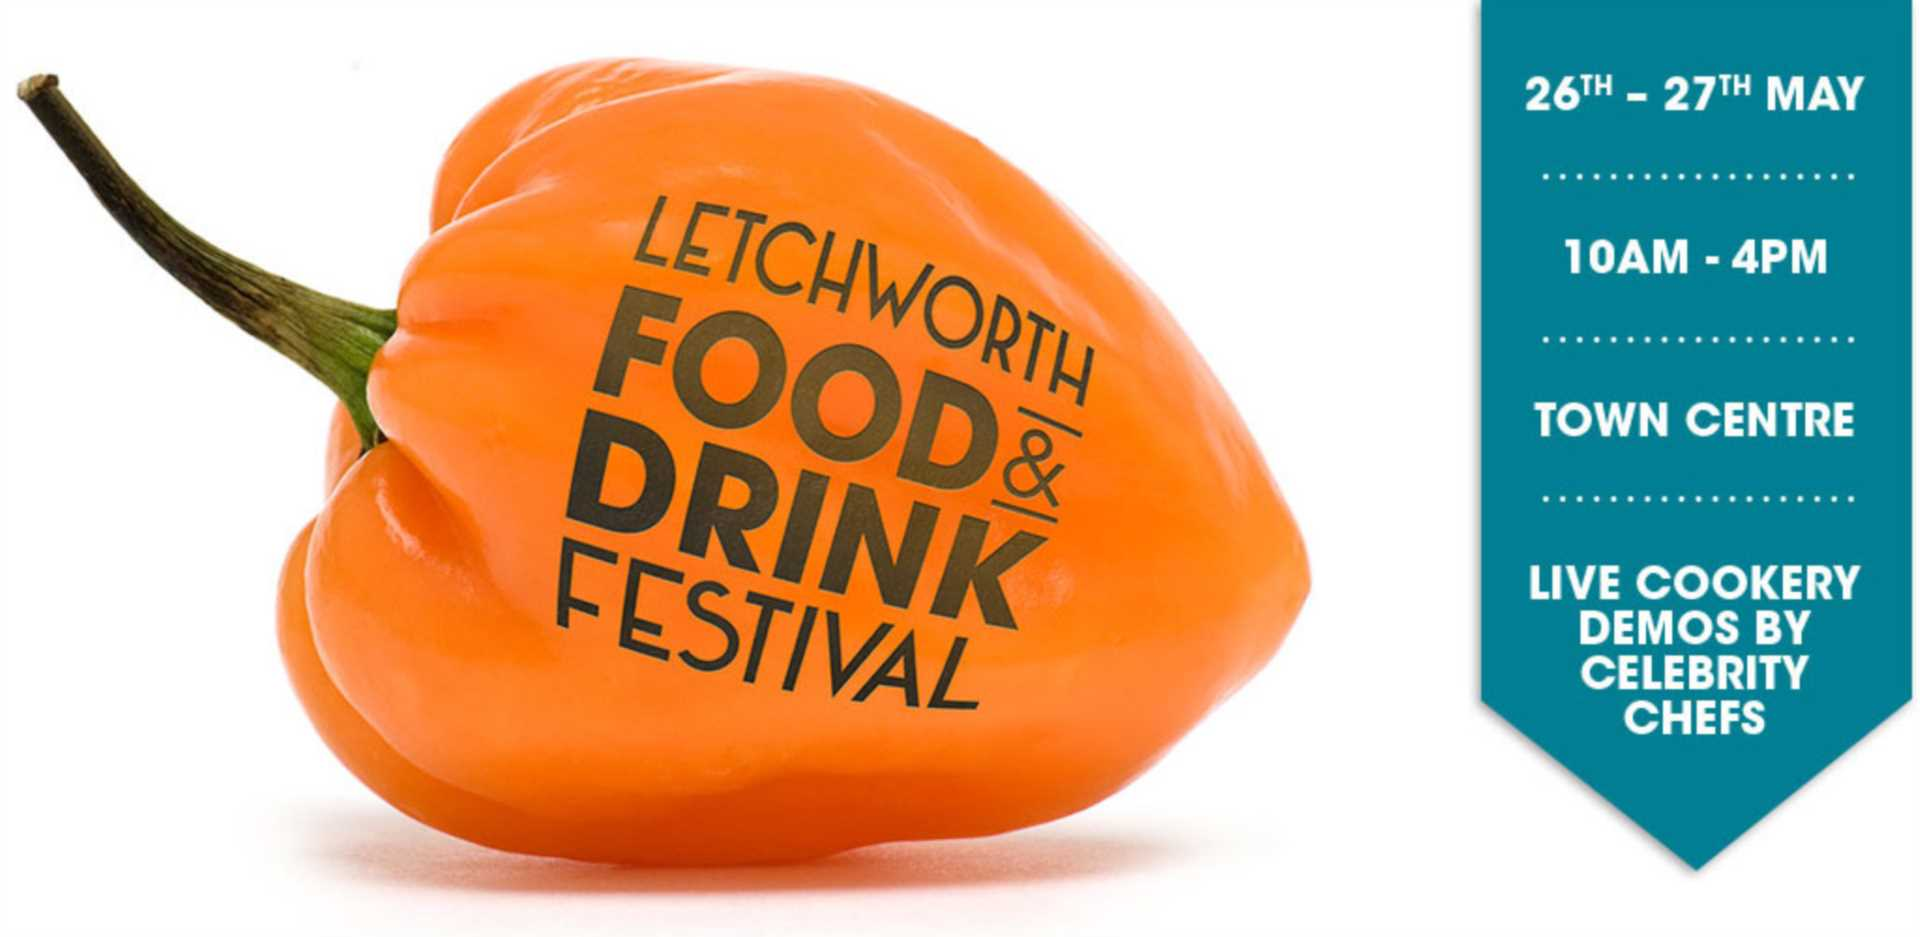 Letchworth food & drink festival, going to be awesome